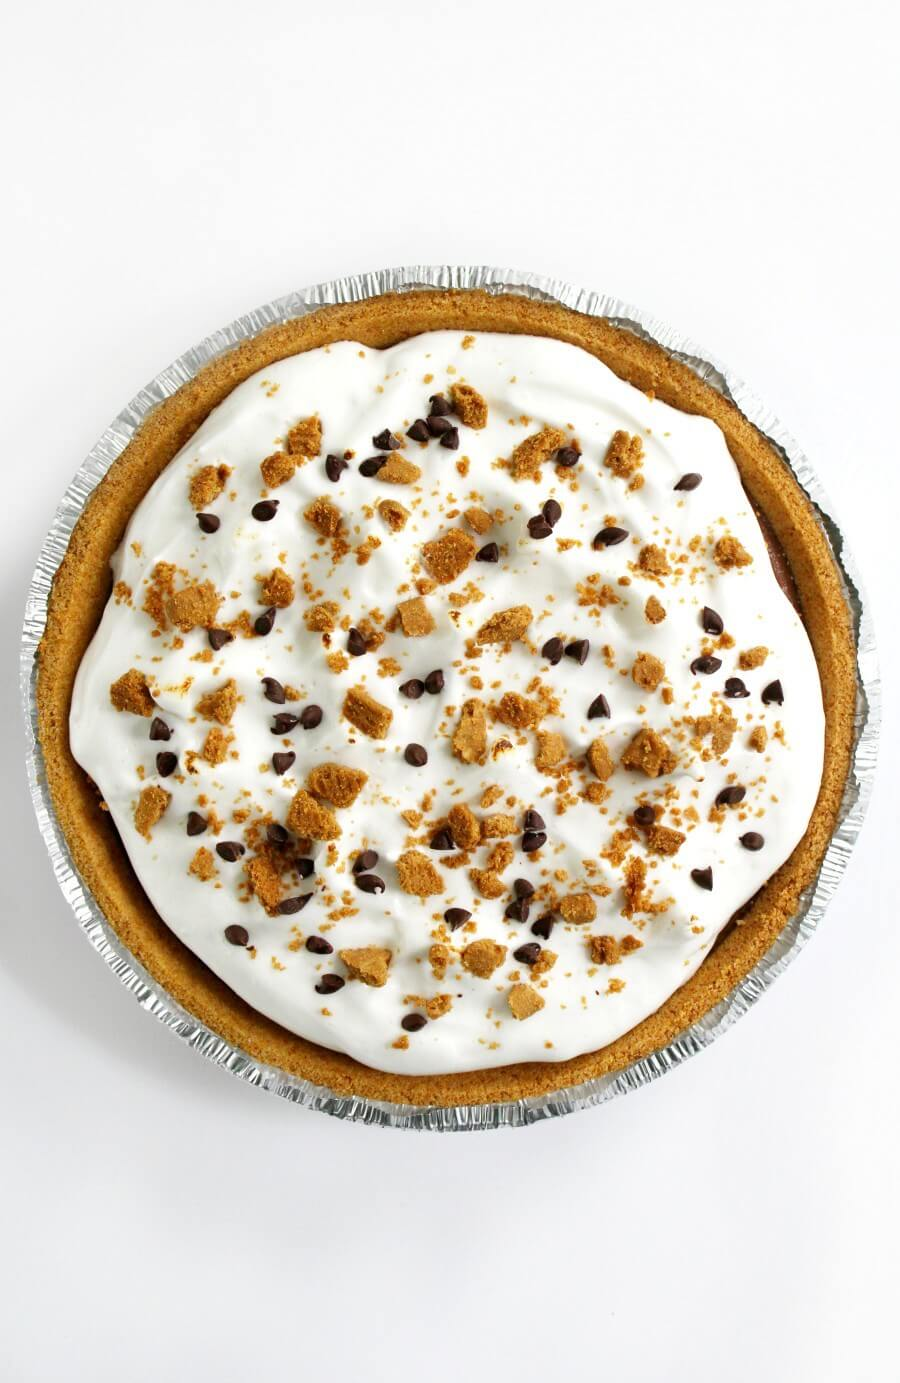 overhead view of finished vegan s'mores pie with toppings